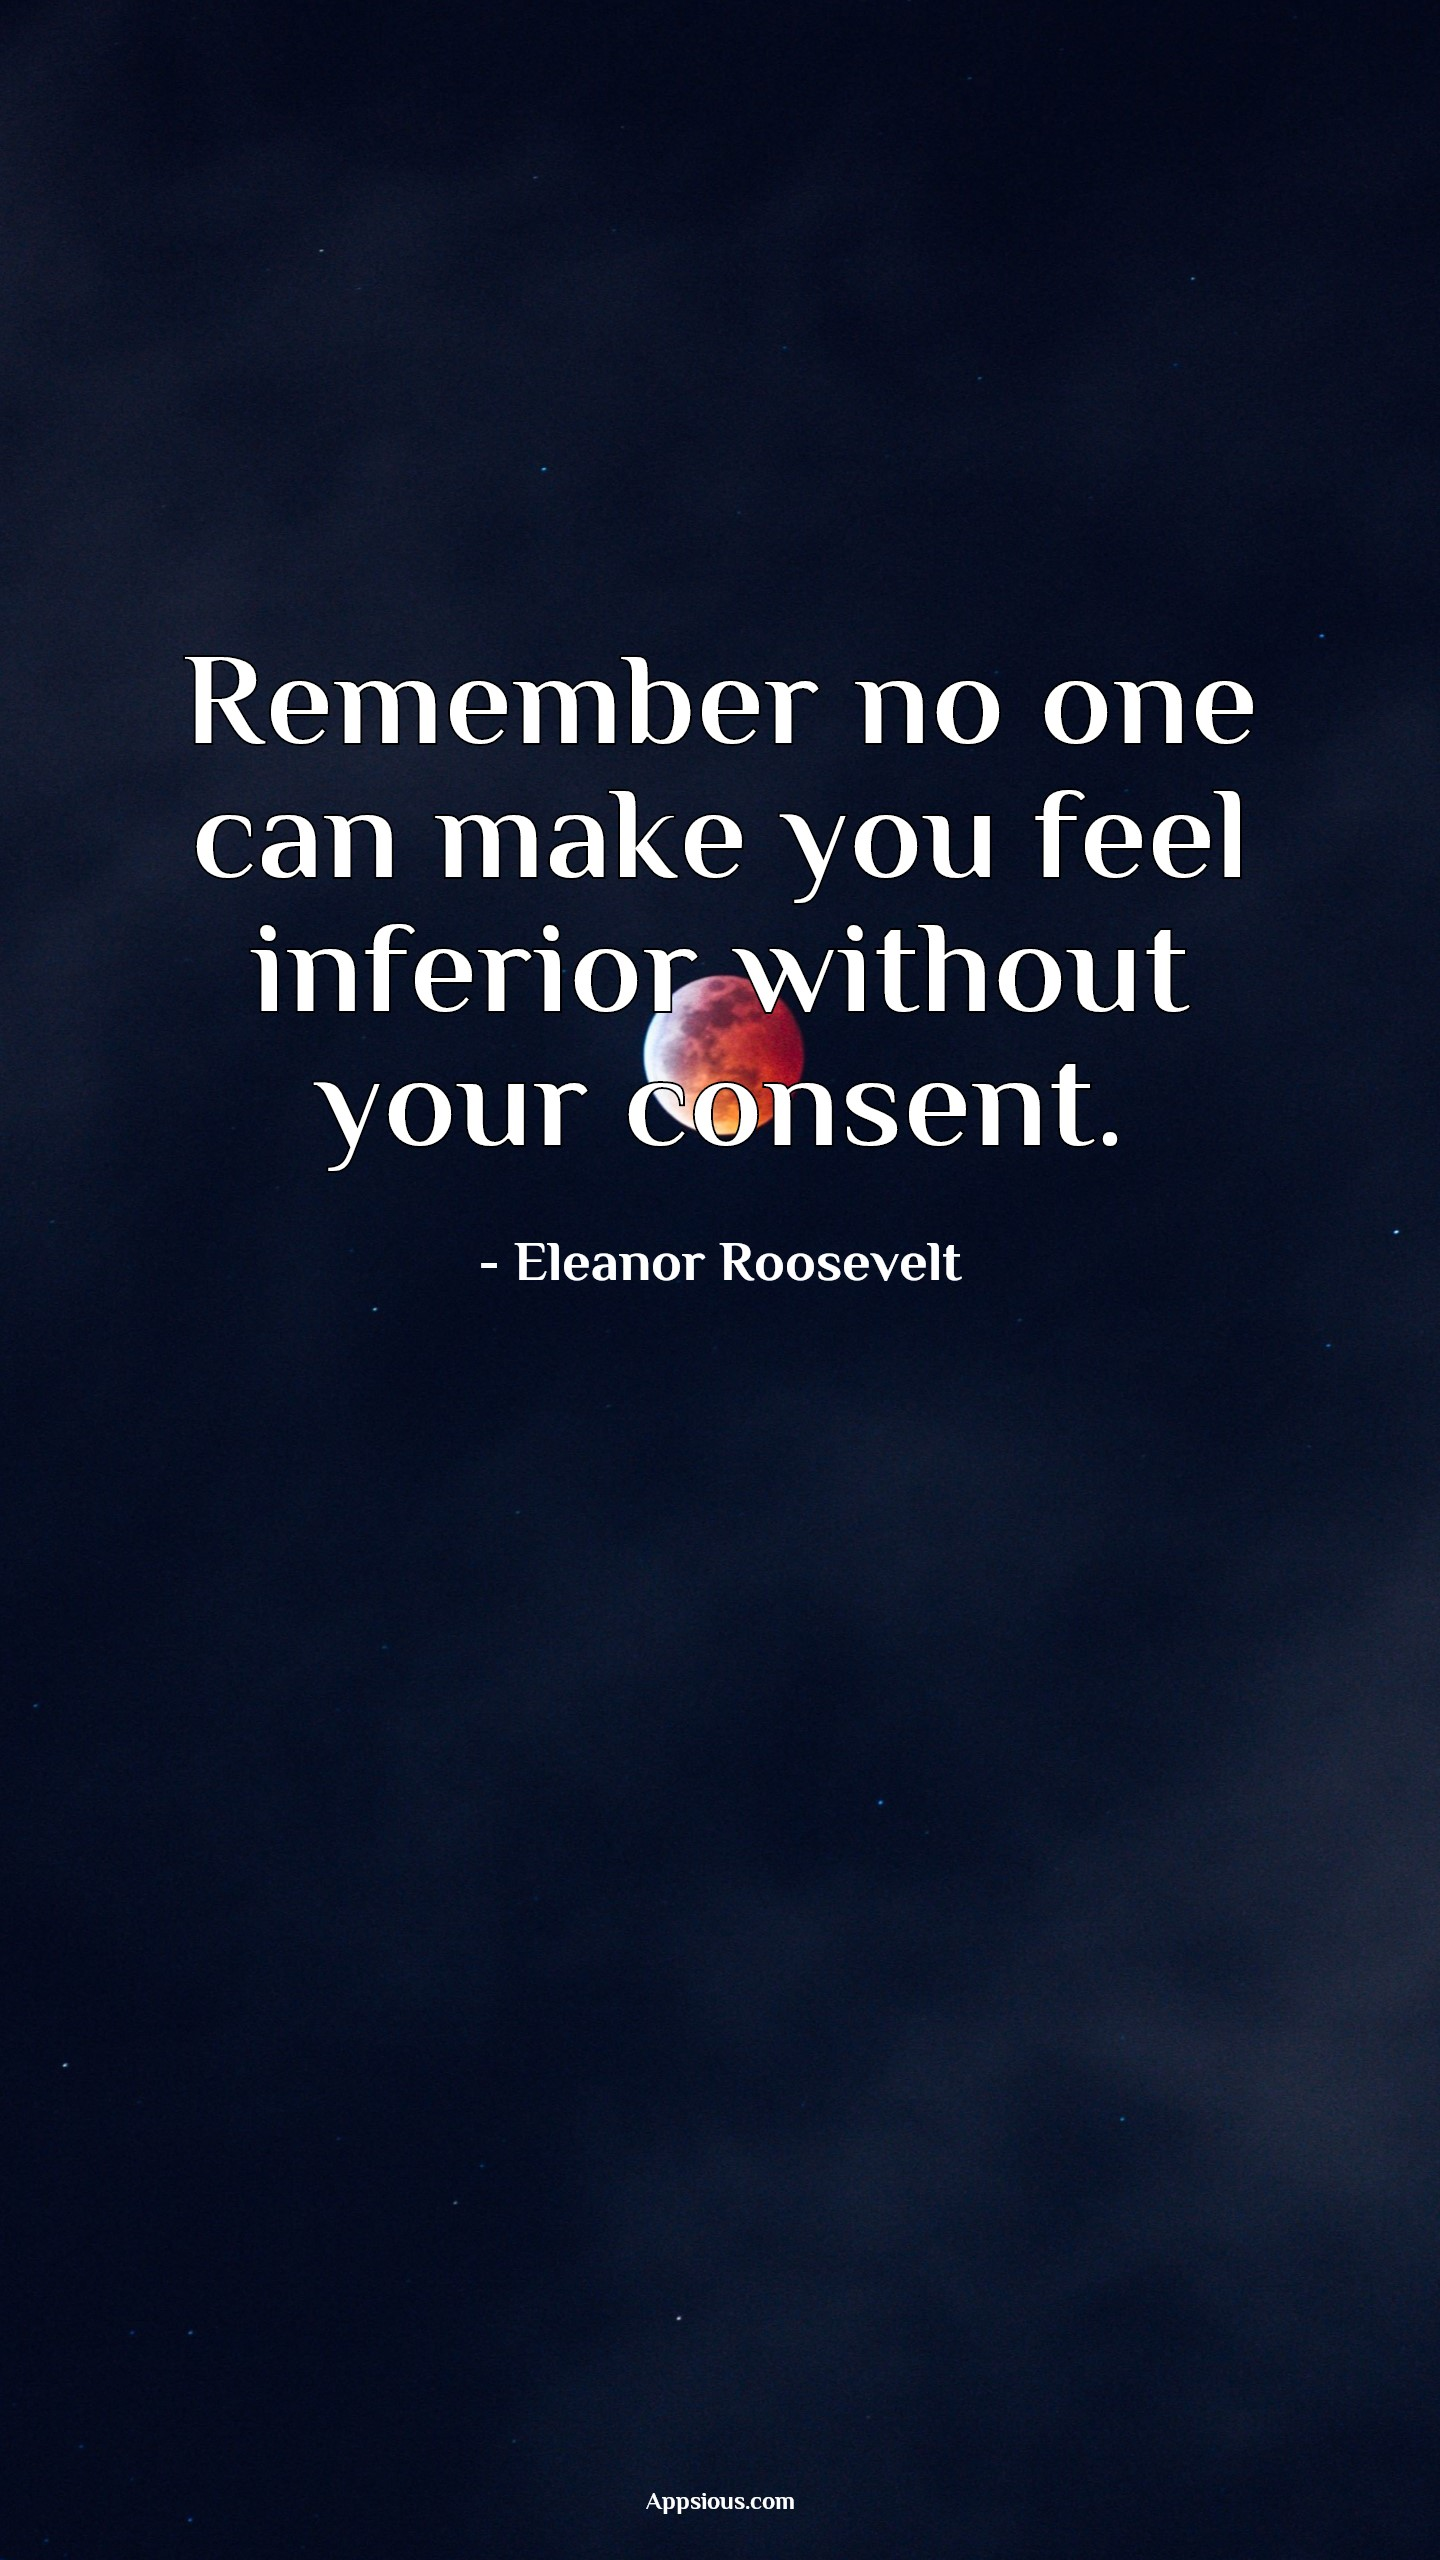 Remember no one can make you feel inferior without your consent.